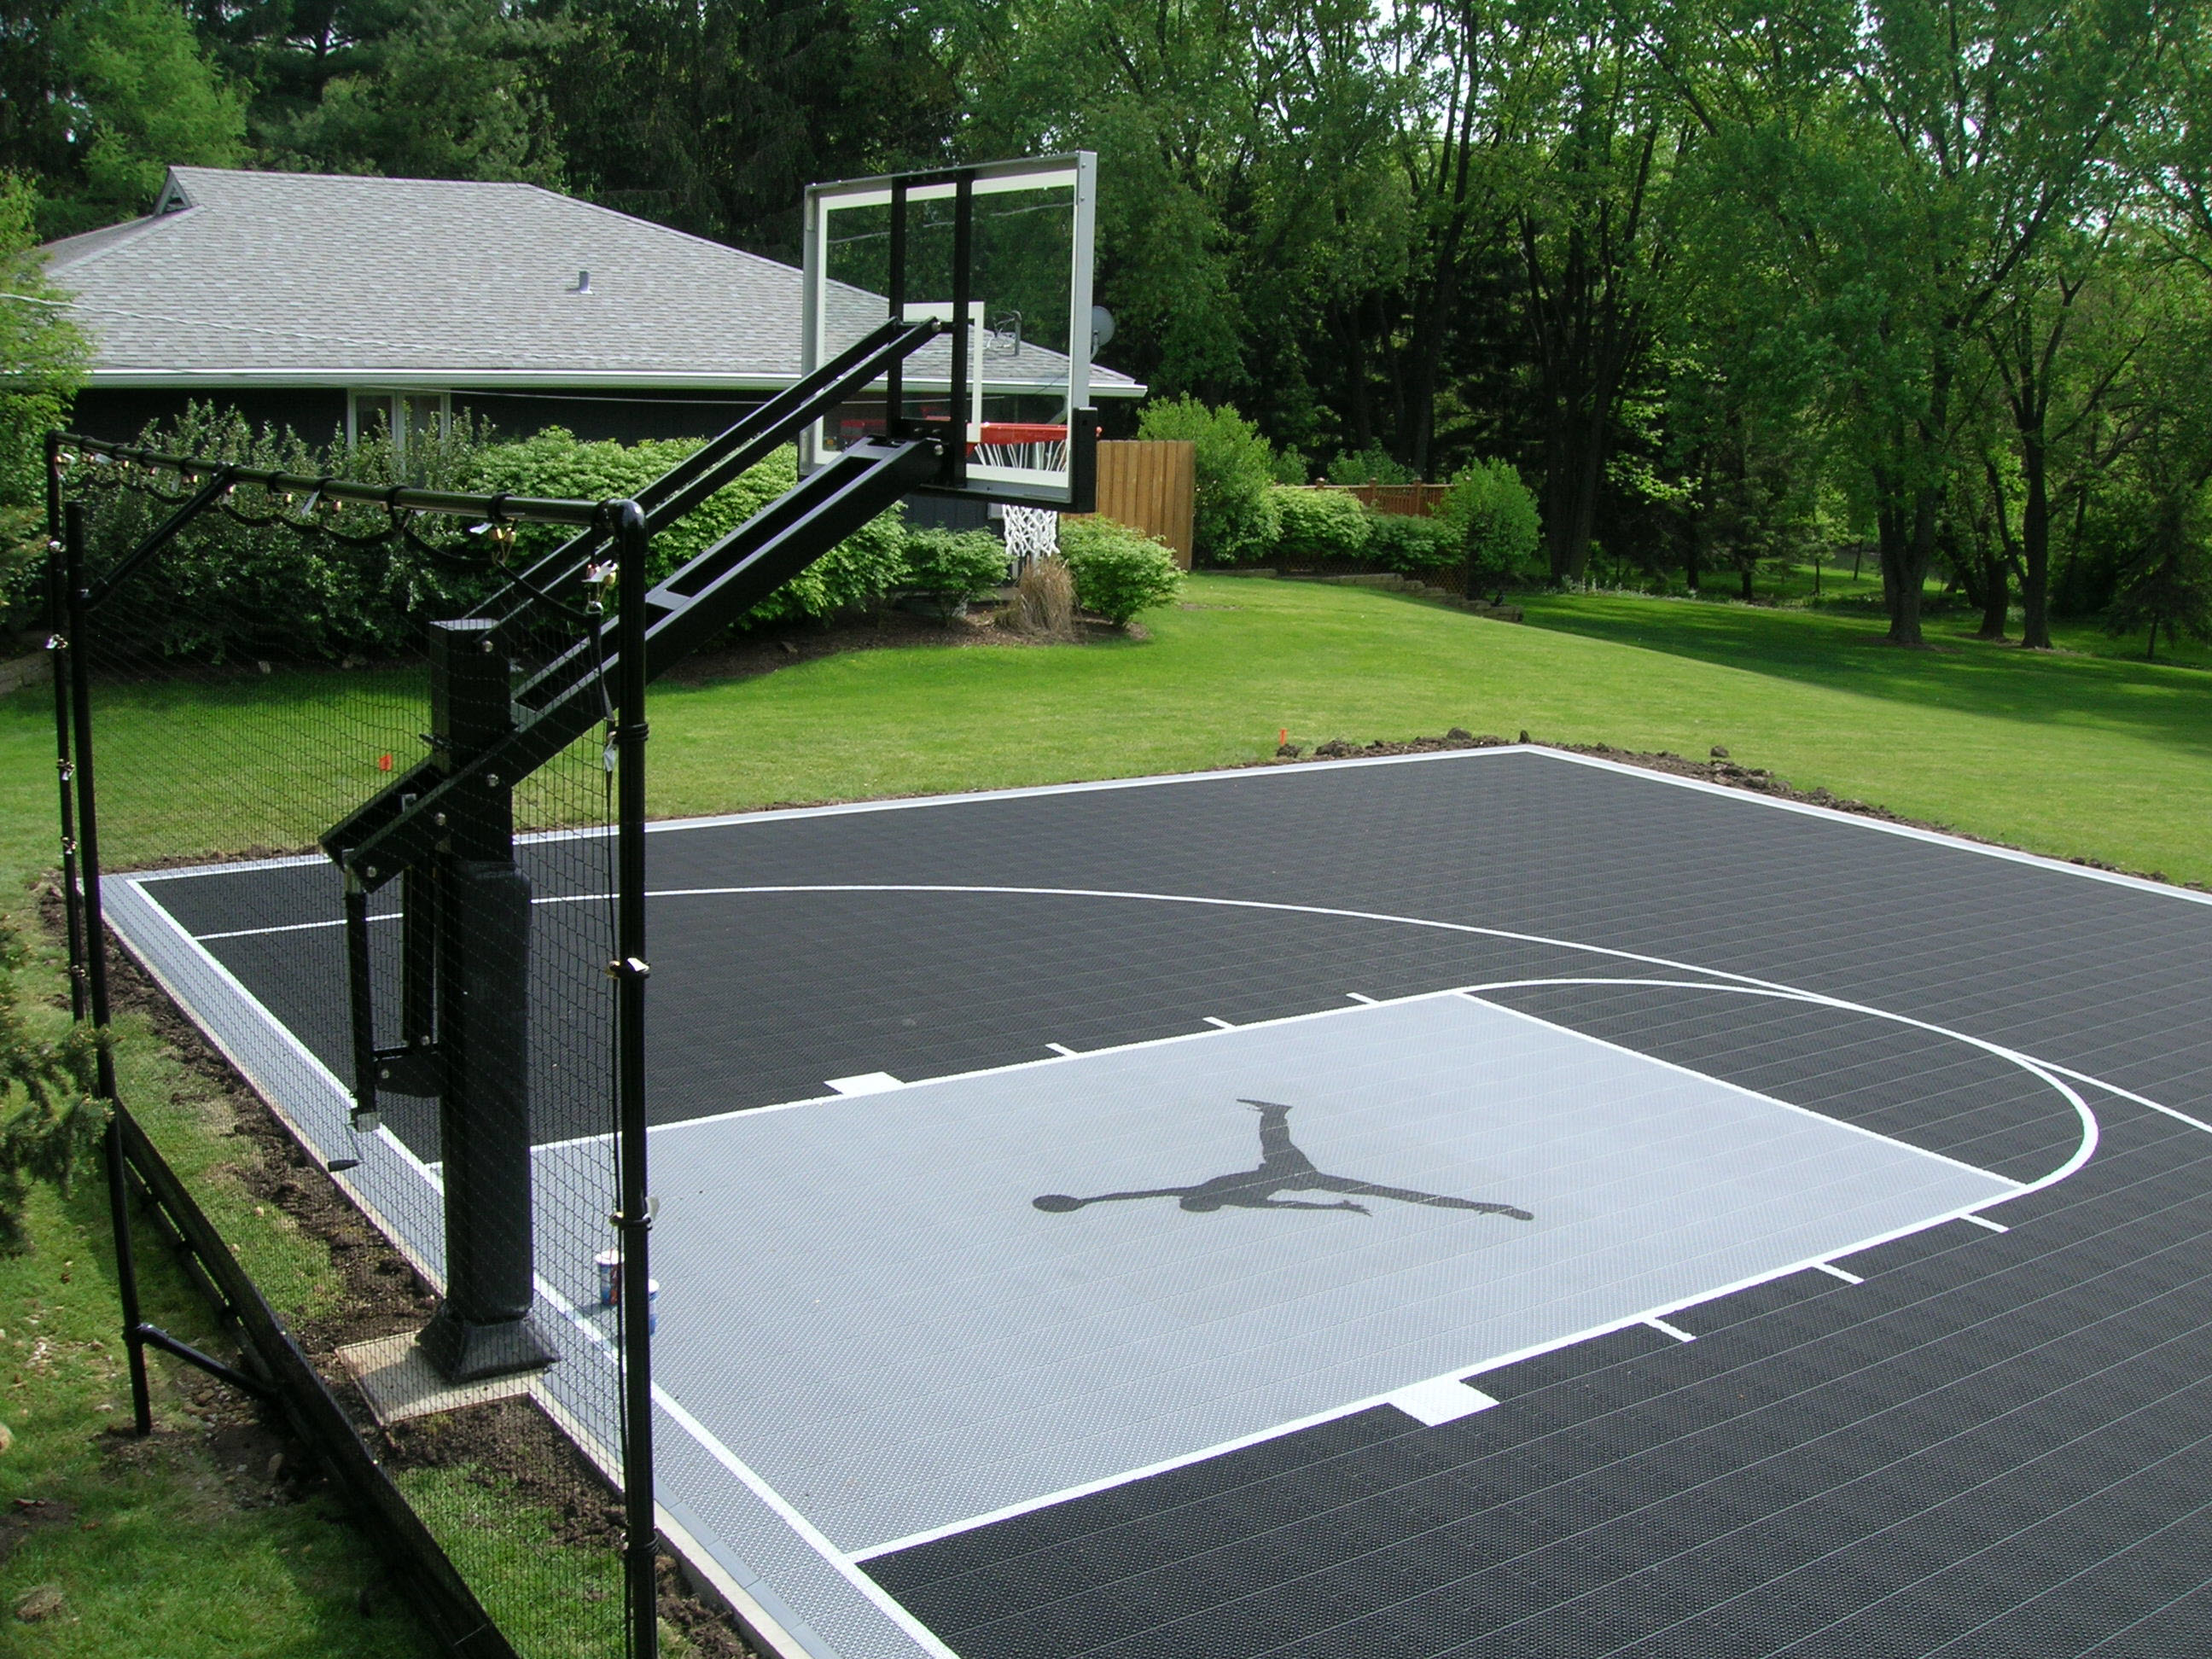 Basketporn top 13 backyard basketball courts basketporn for How to build a sport court